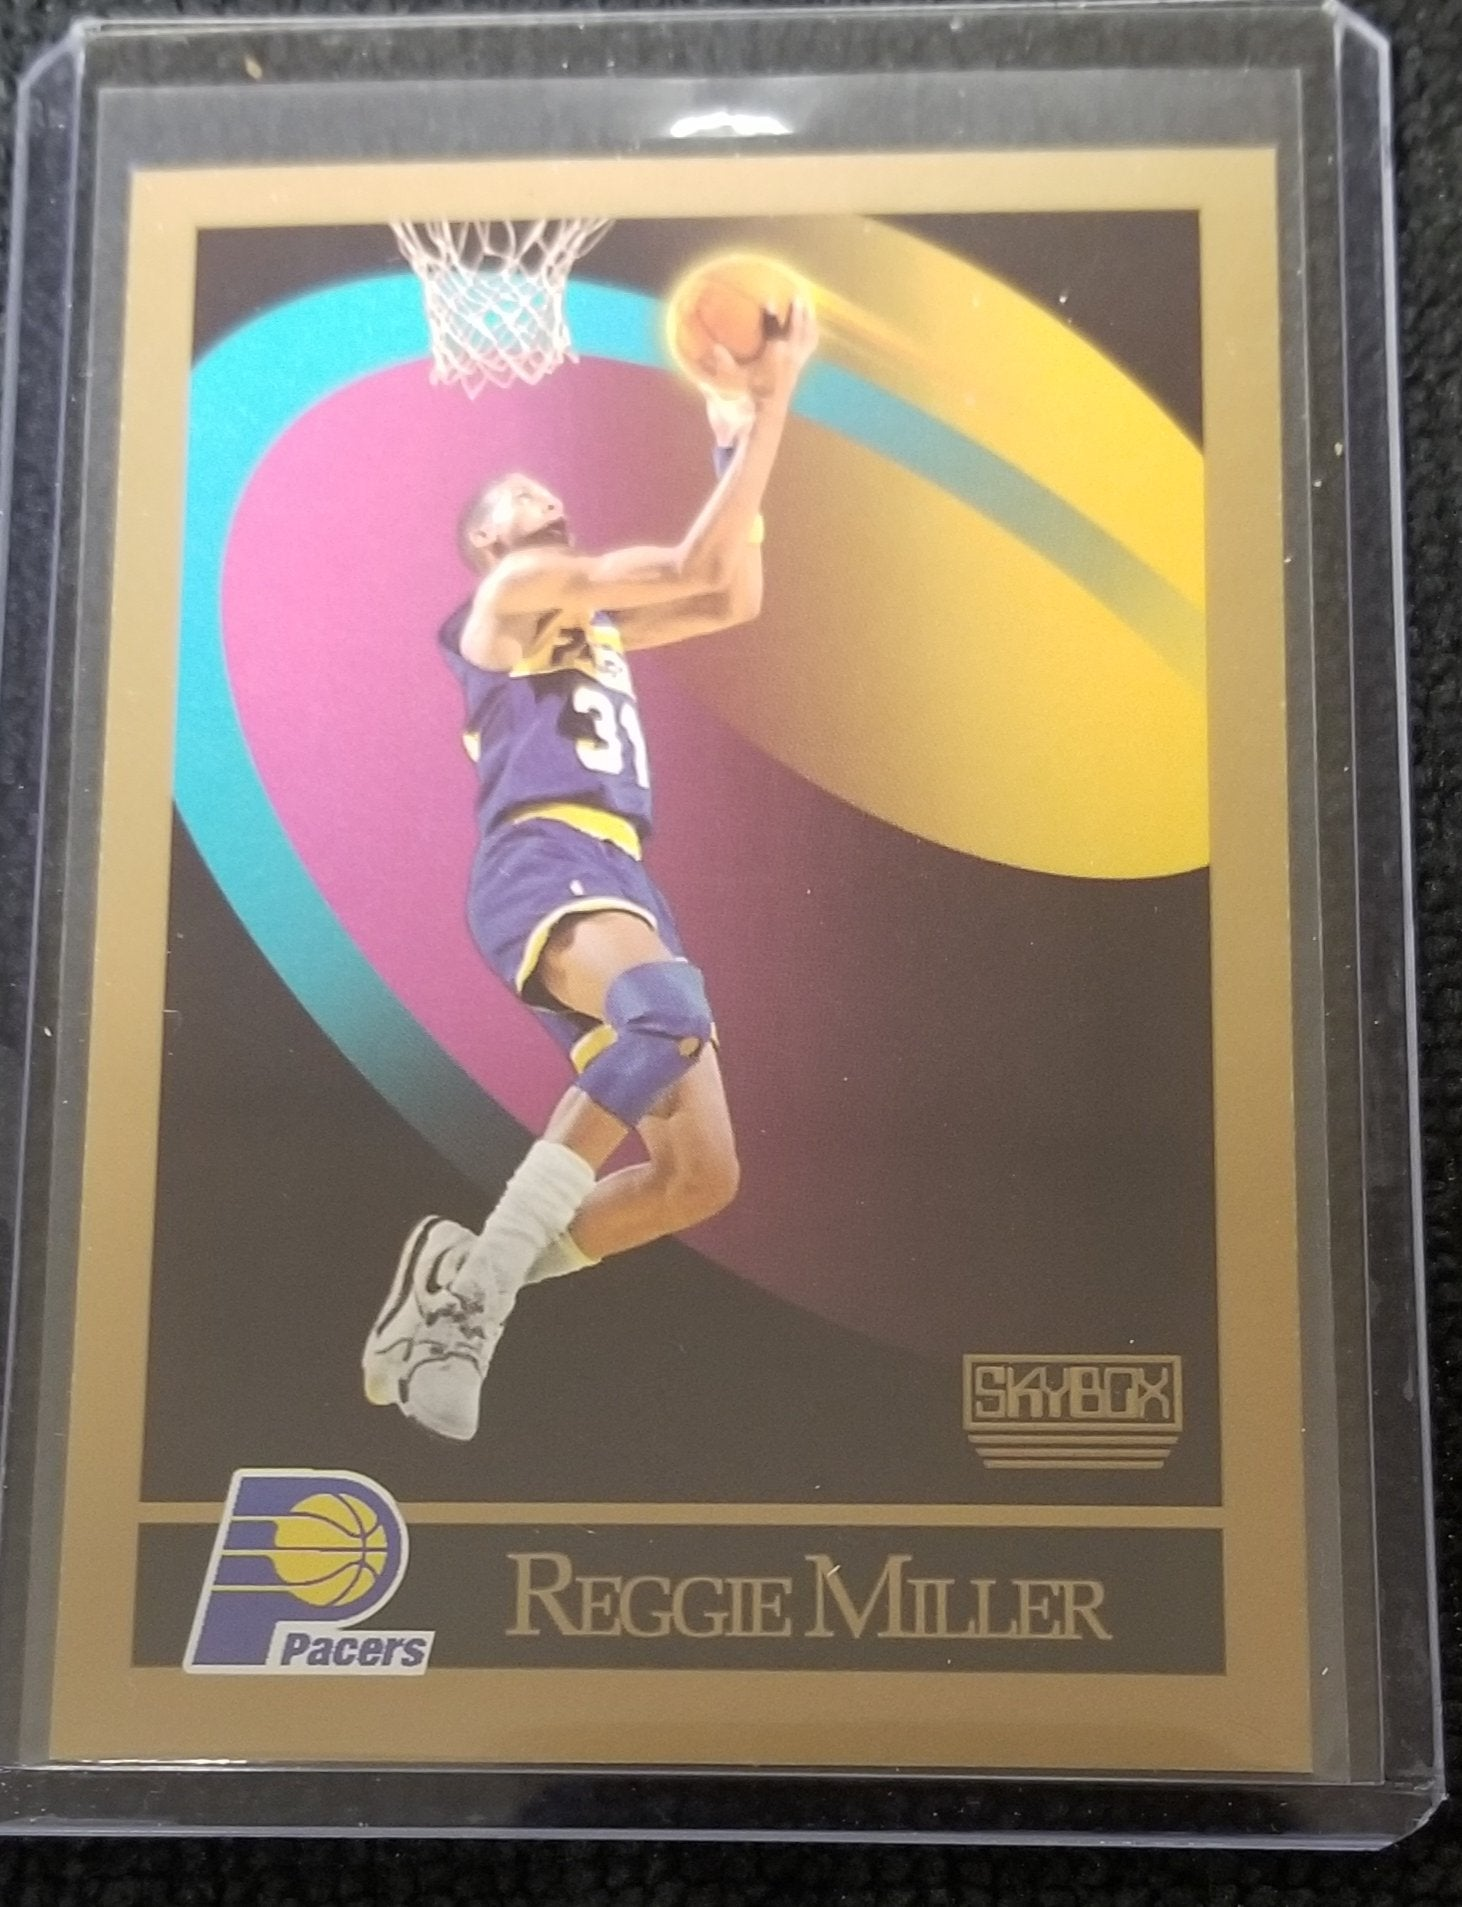 Rare Reggie Miller (HOF) Indiana Pacers 1990-91 Skybox Basketball Card #117